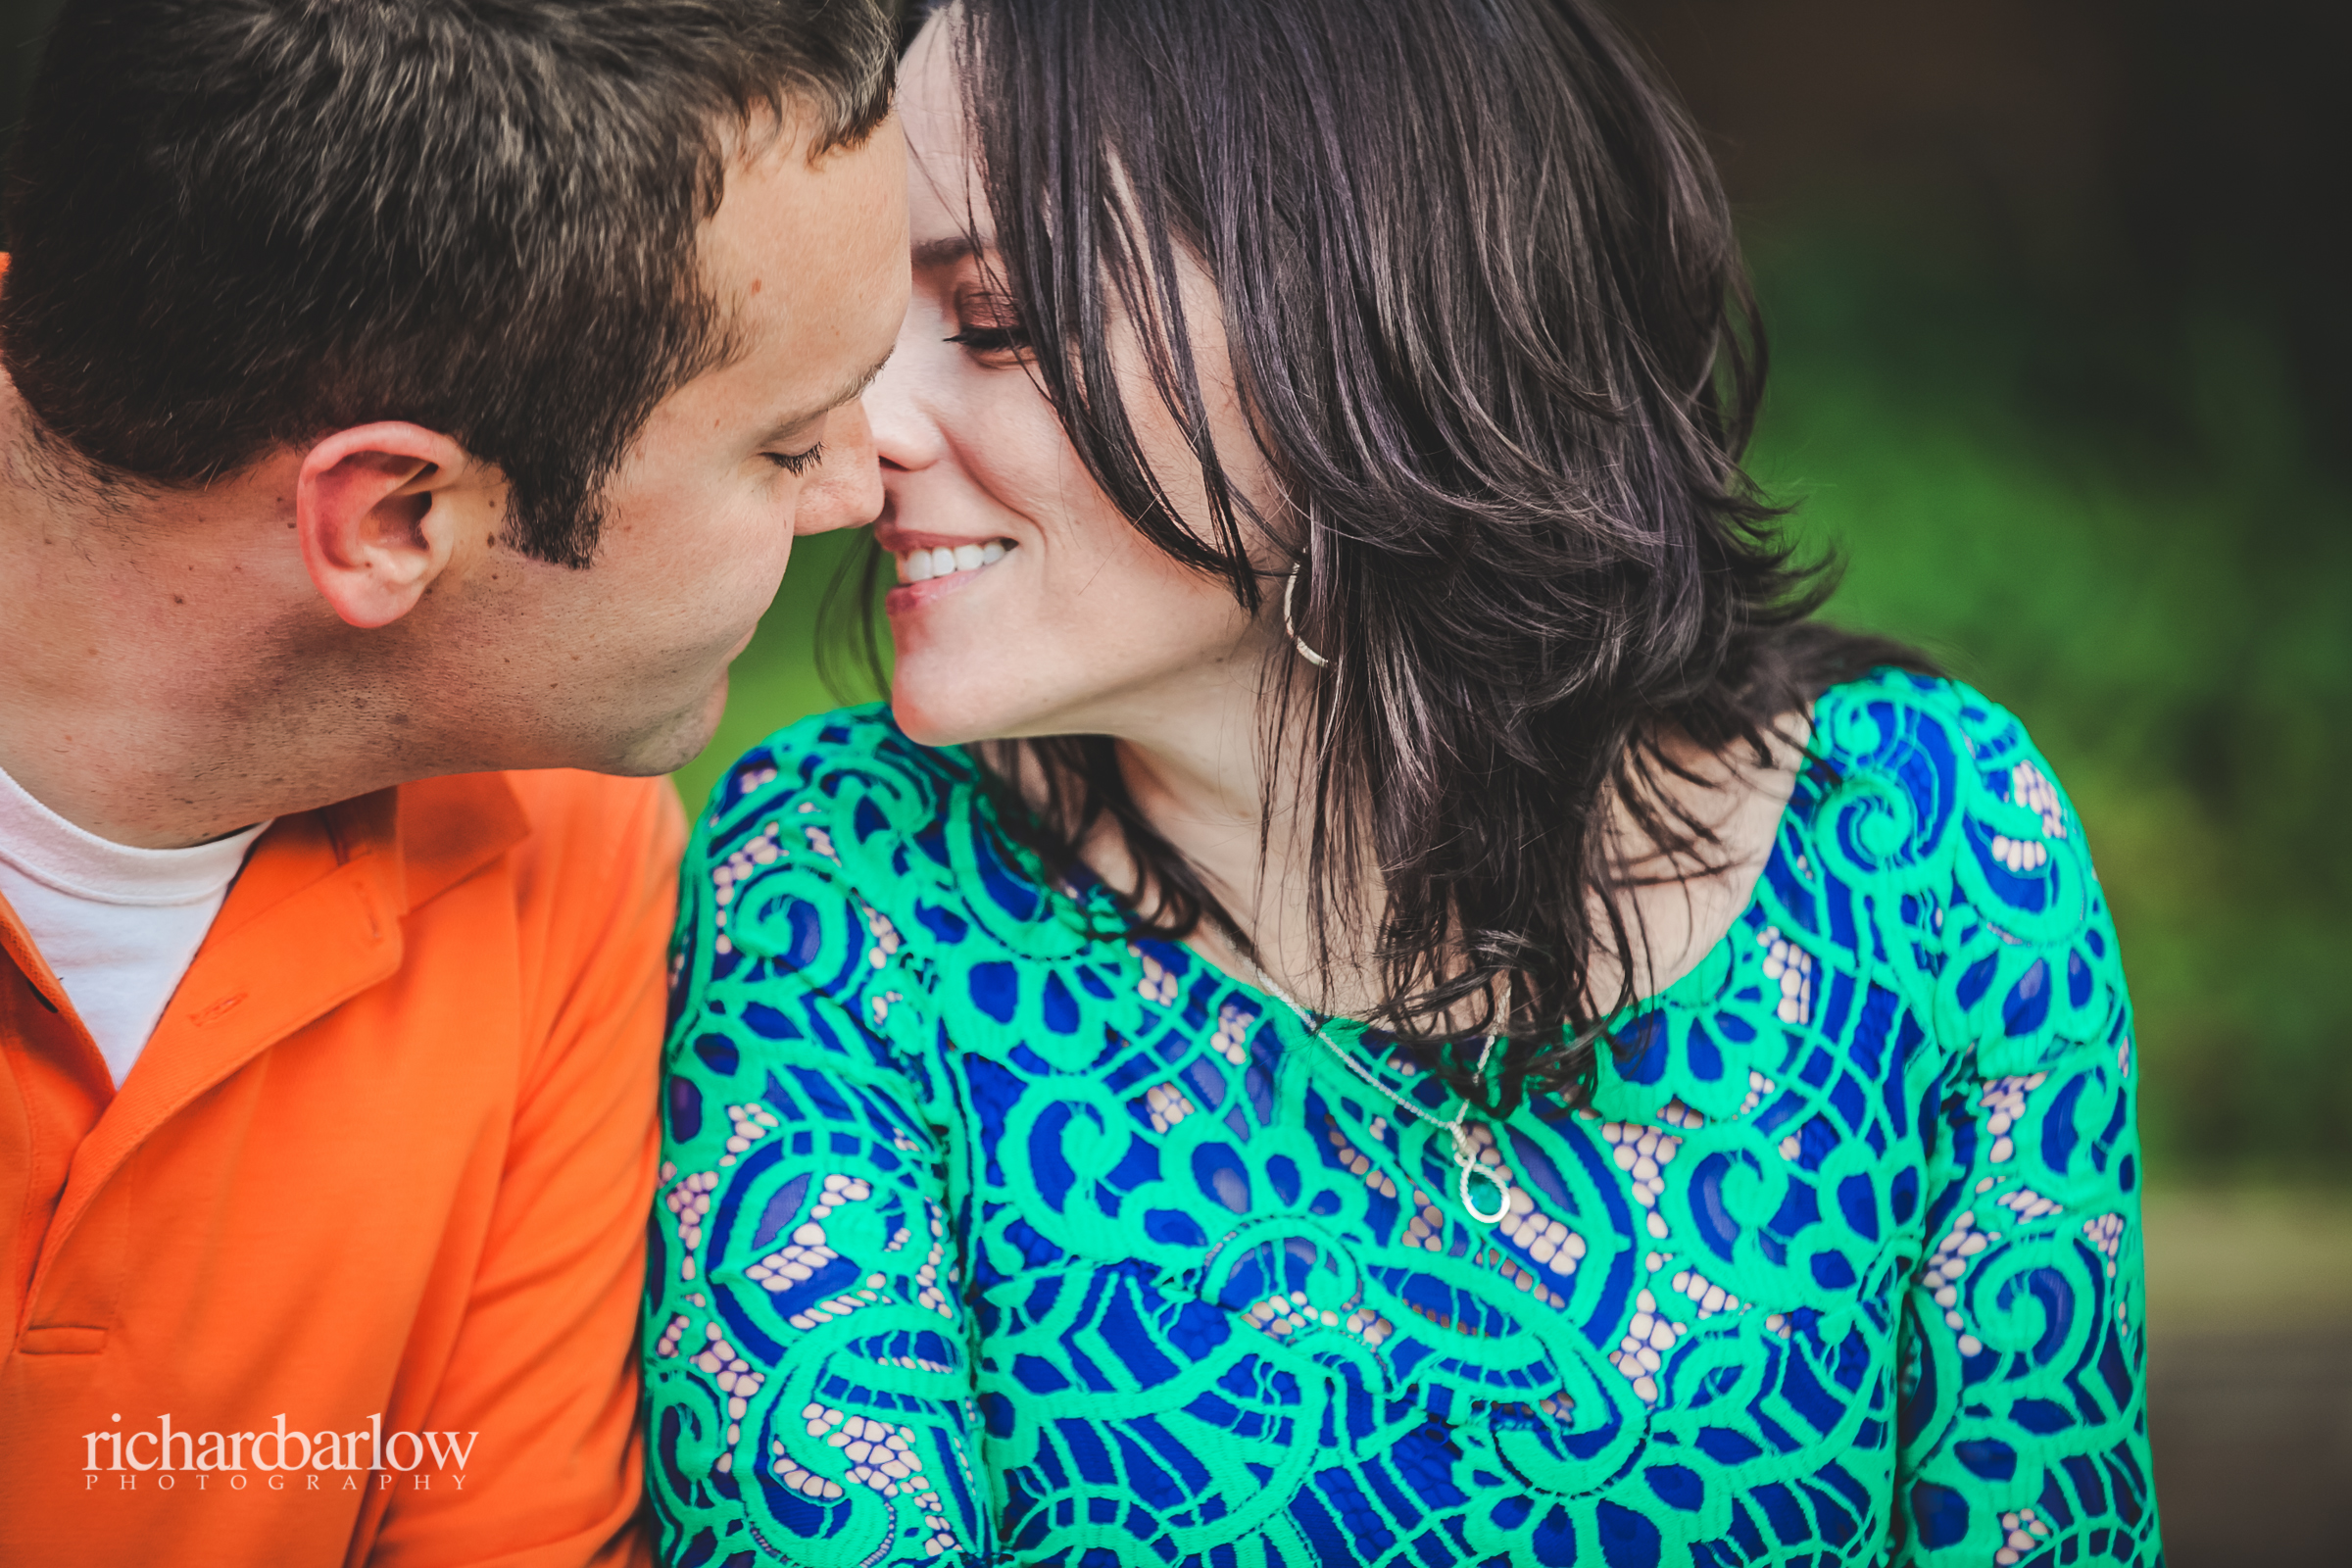 richard barlow photography - Jason and Karen Engagement Session NC State-20.jpg